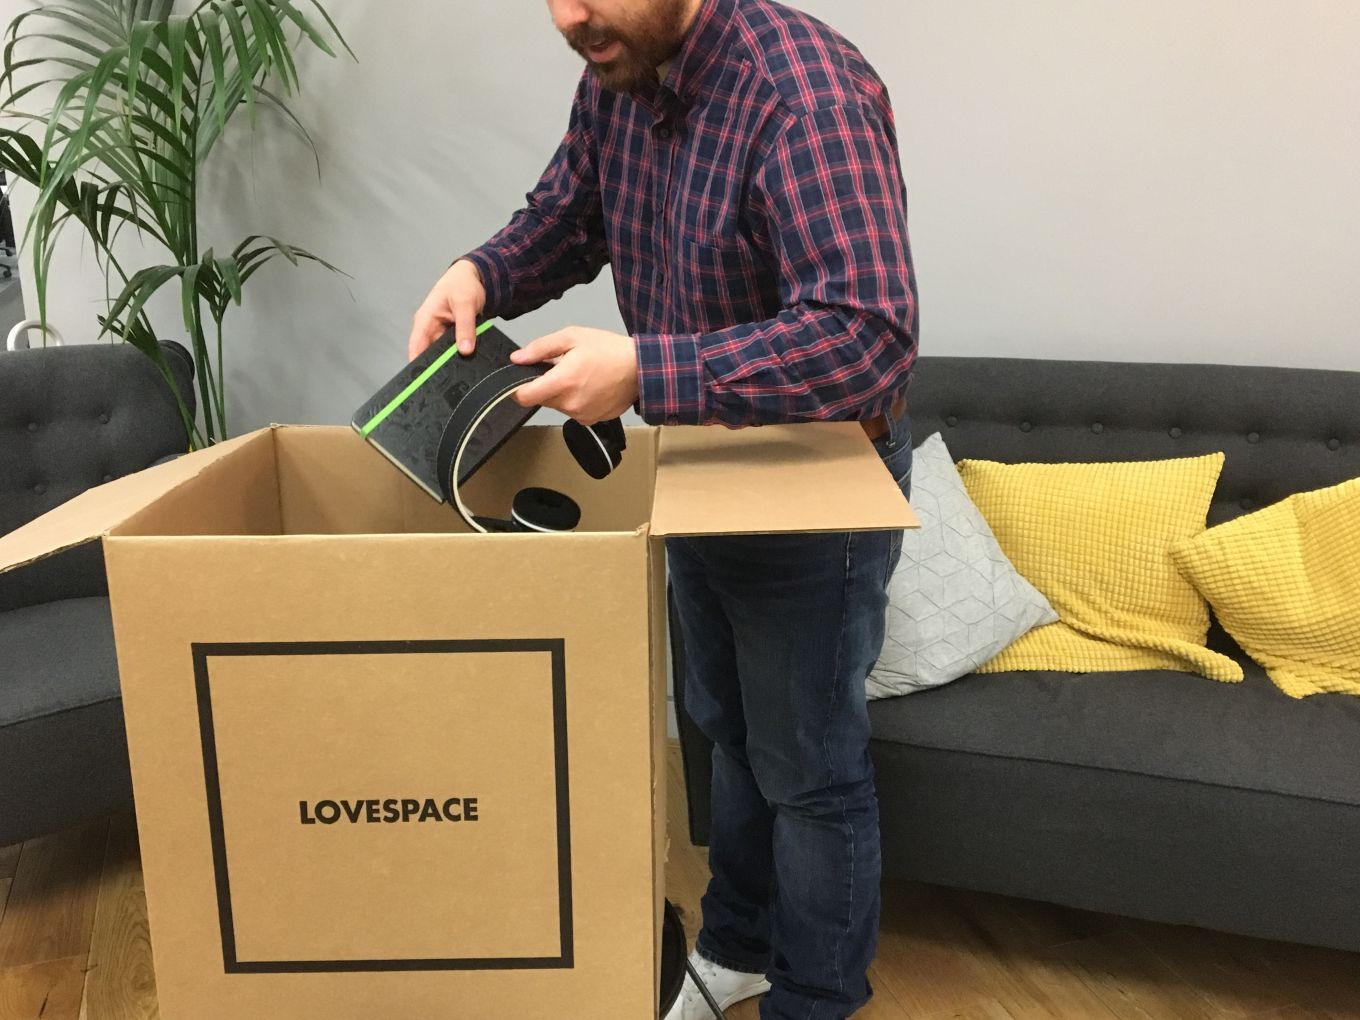 Hipster beard packing into boxes